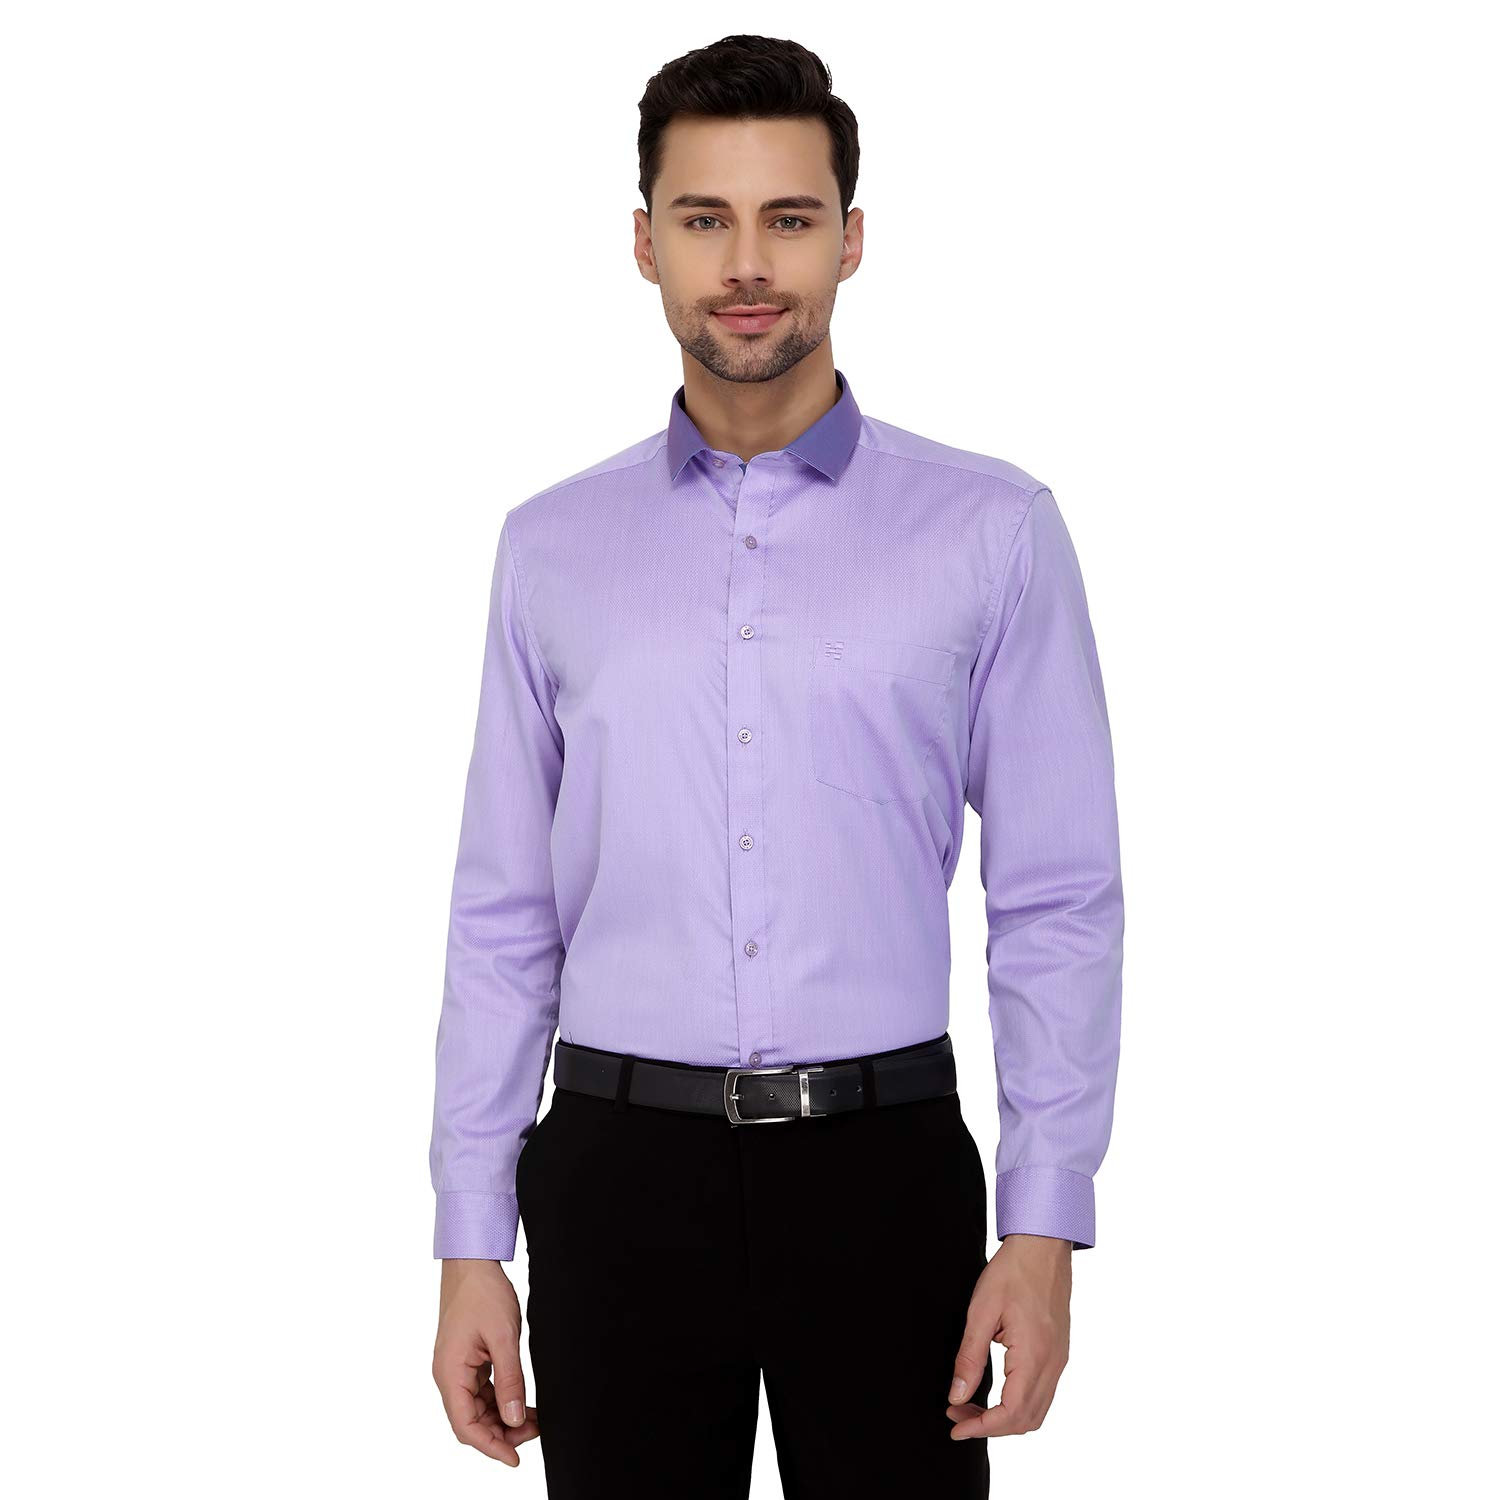 a3c35bae9c8 Equation Formal Shirt for Men – Purple Color Shirt for Men - 100% Cotton  Yarn-Dyed Fabric with Softner Washed Shirts – Regular Fit Shirts for Men –  Long ...